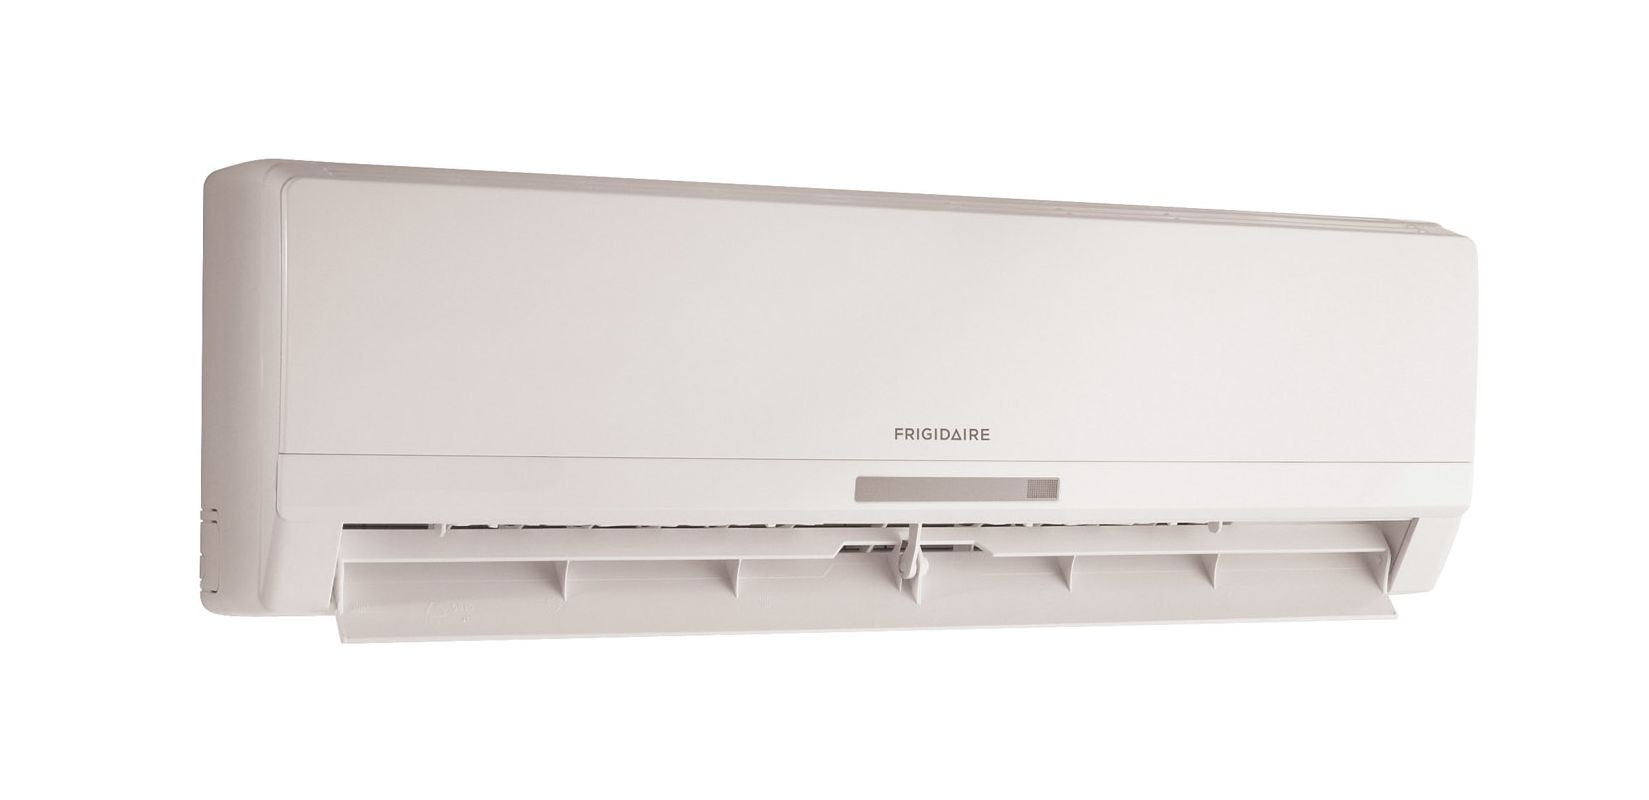 Frigidaire FRS224YW2 Energy Star Indoor Unit Mini-Split Ductless Air Conditioner photo